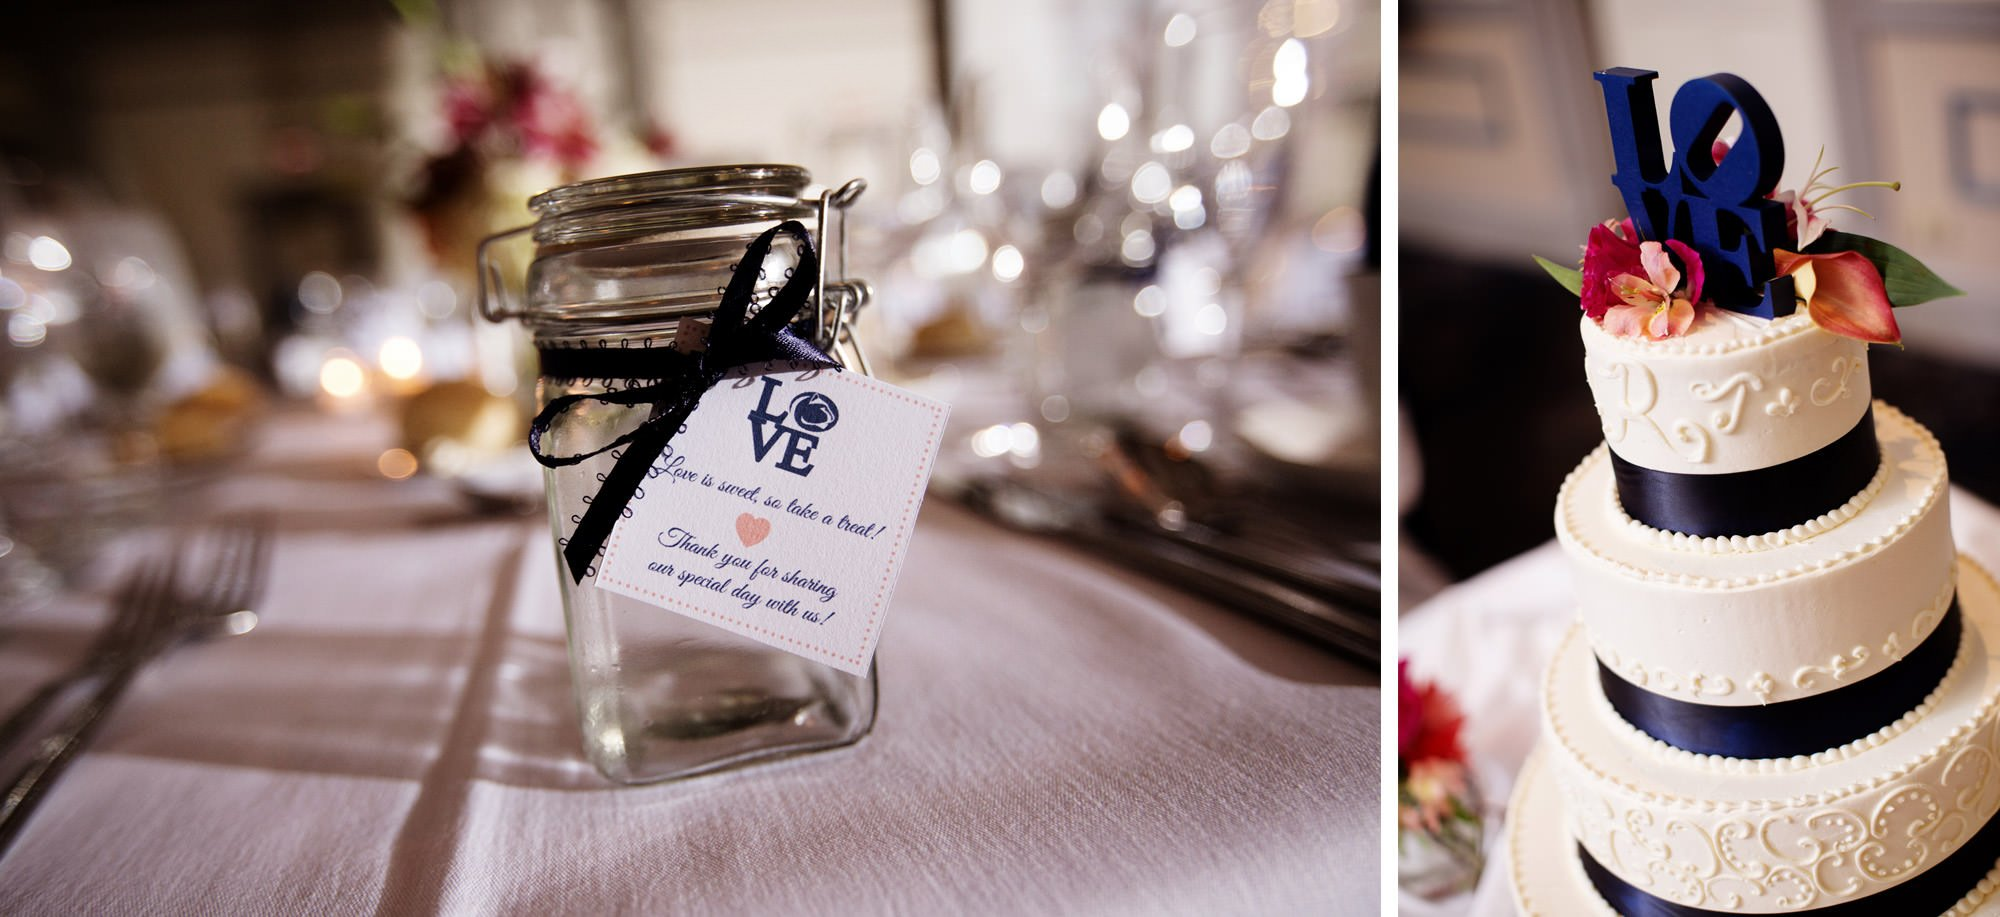 Details of the cake and gifts at this Nittany Lion Inn wedding.